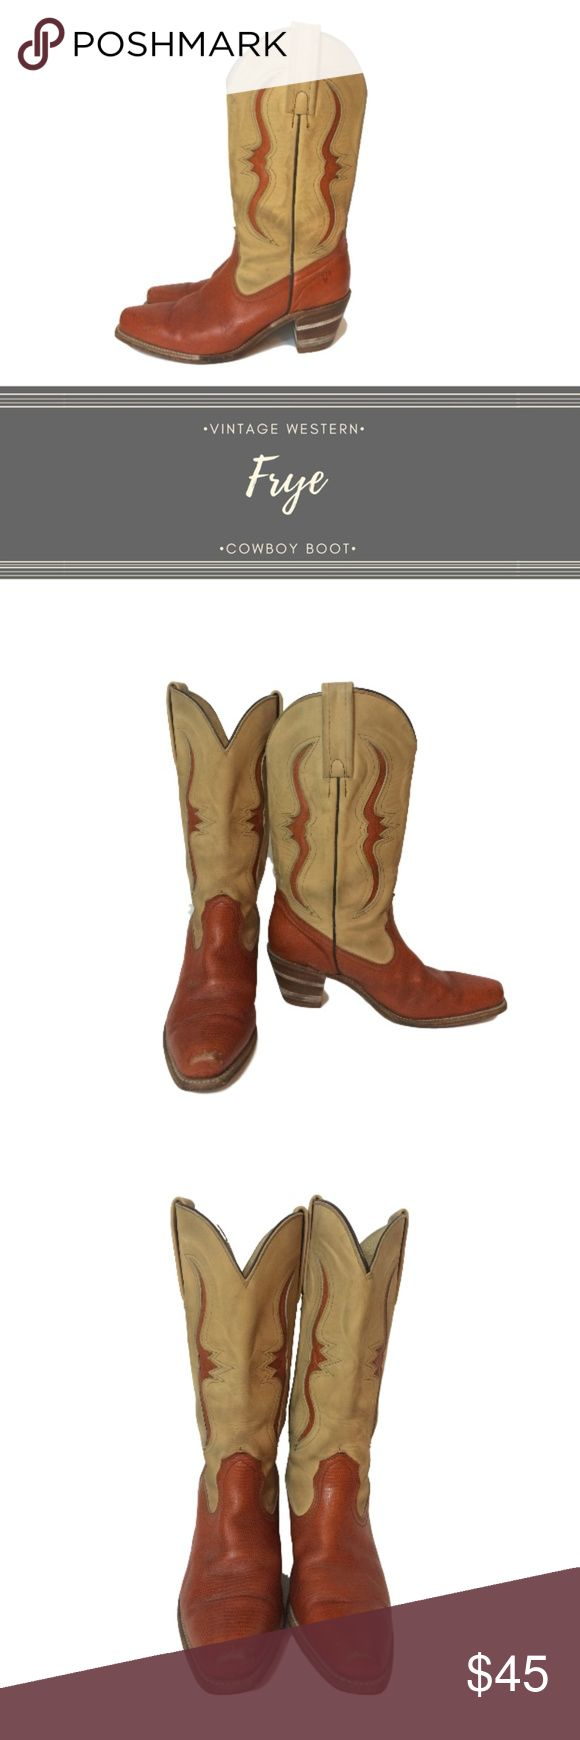 VTG Pre-Loved FRYE Western Cowboy Boot USA, sz. 10 These gorgeous Frye western cowboy boots are gorgeous! The orangy leather is complimented by tan uppers. These are structurally in great shape, but do have some wear on the toes and rear heels. Also, the uppers are a little dirty from wear but they still have a lot of life left to give. They are really beautiful! I love the squared off toe and the guitar cut outs on the uppers. These are made in the USA and are great quality!  Size: 10…